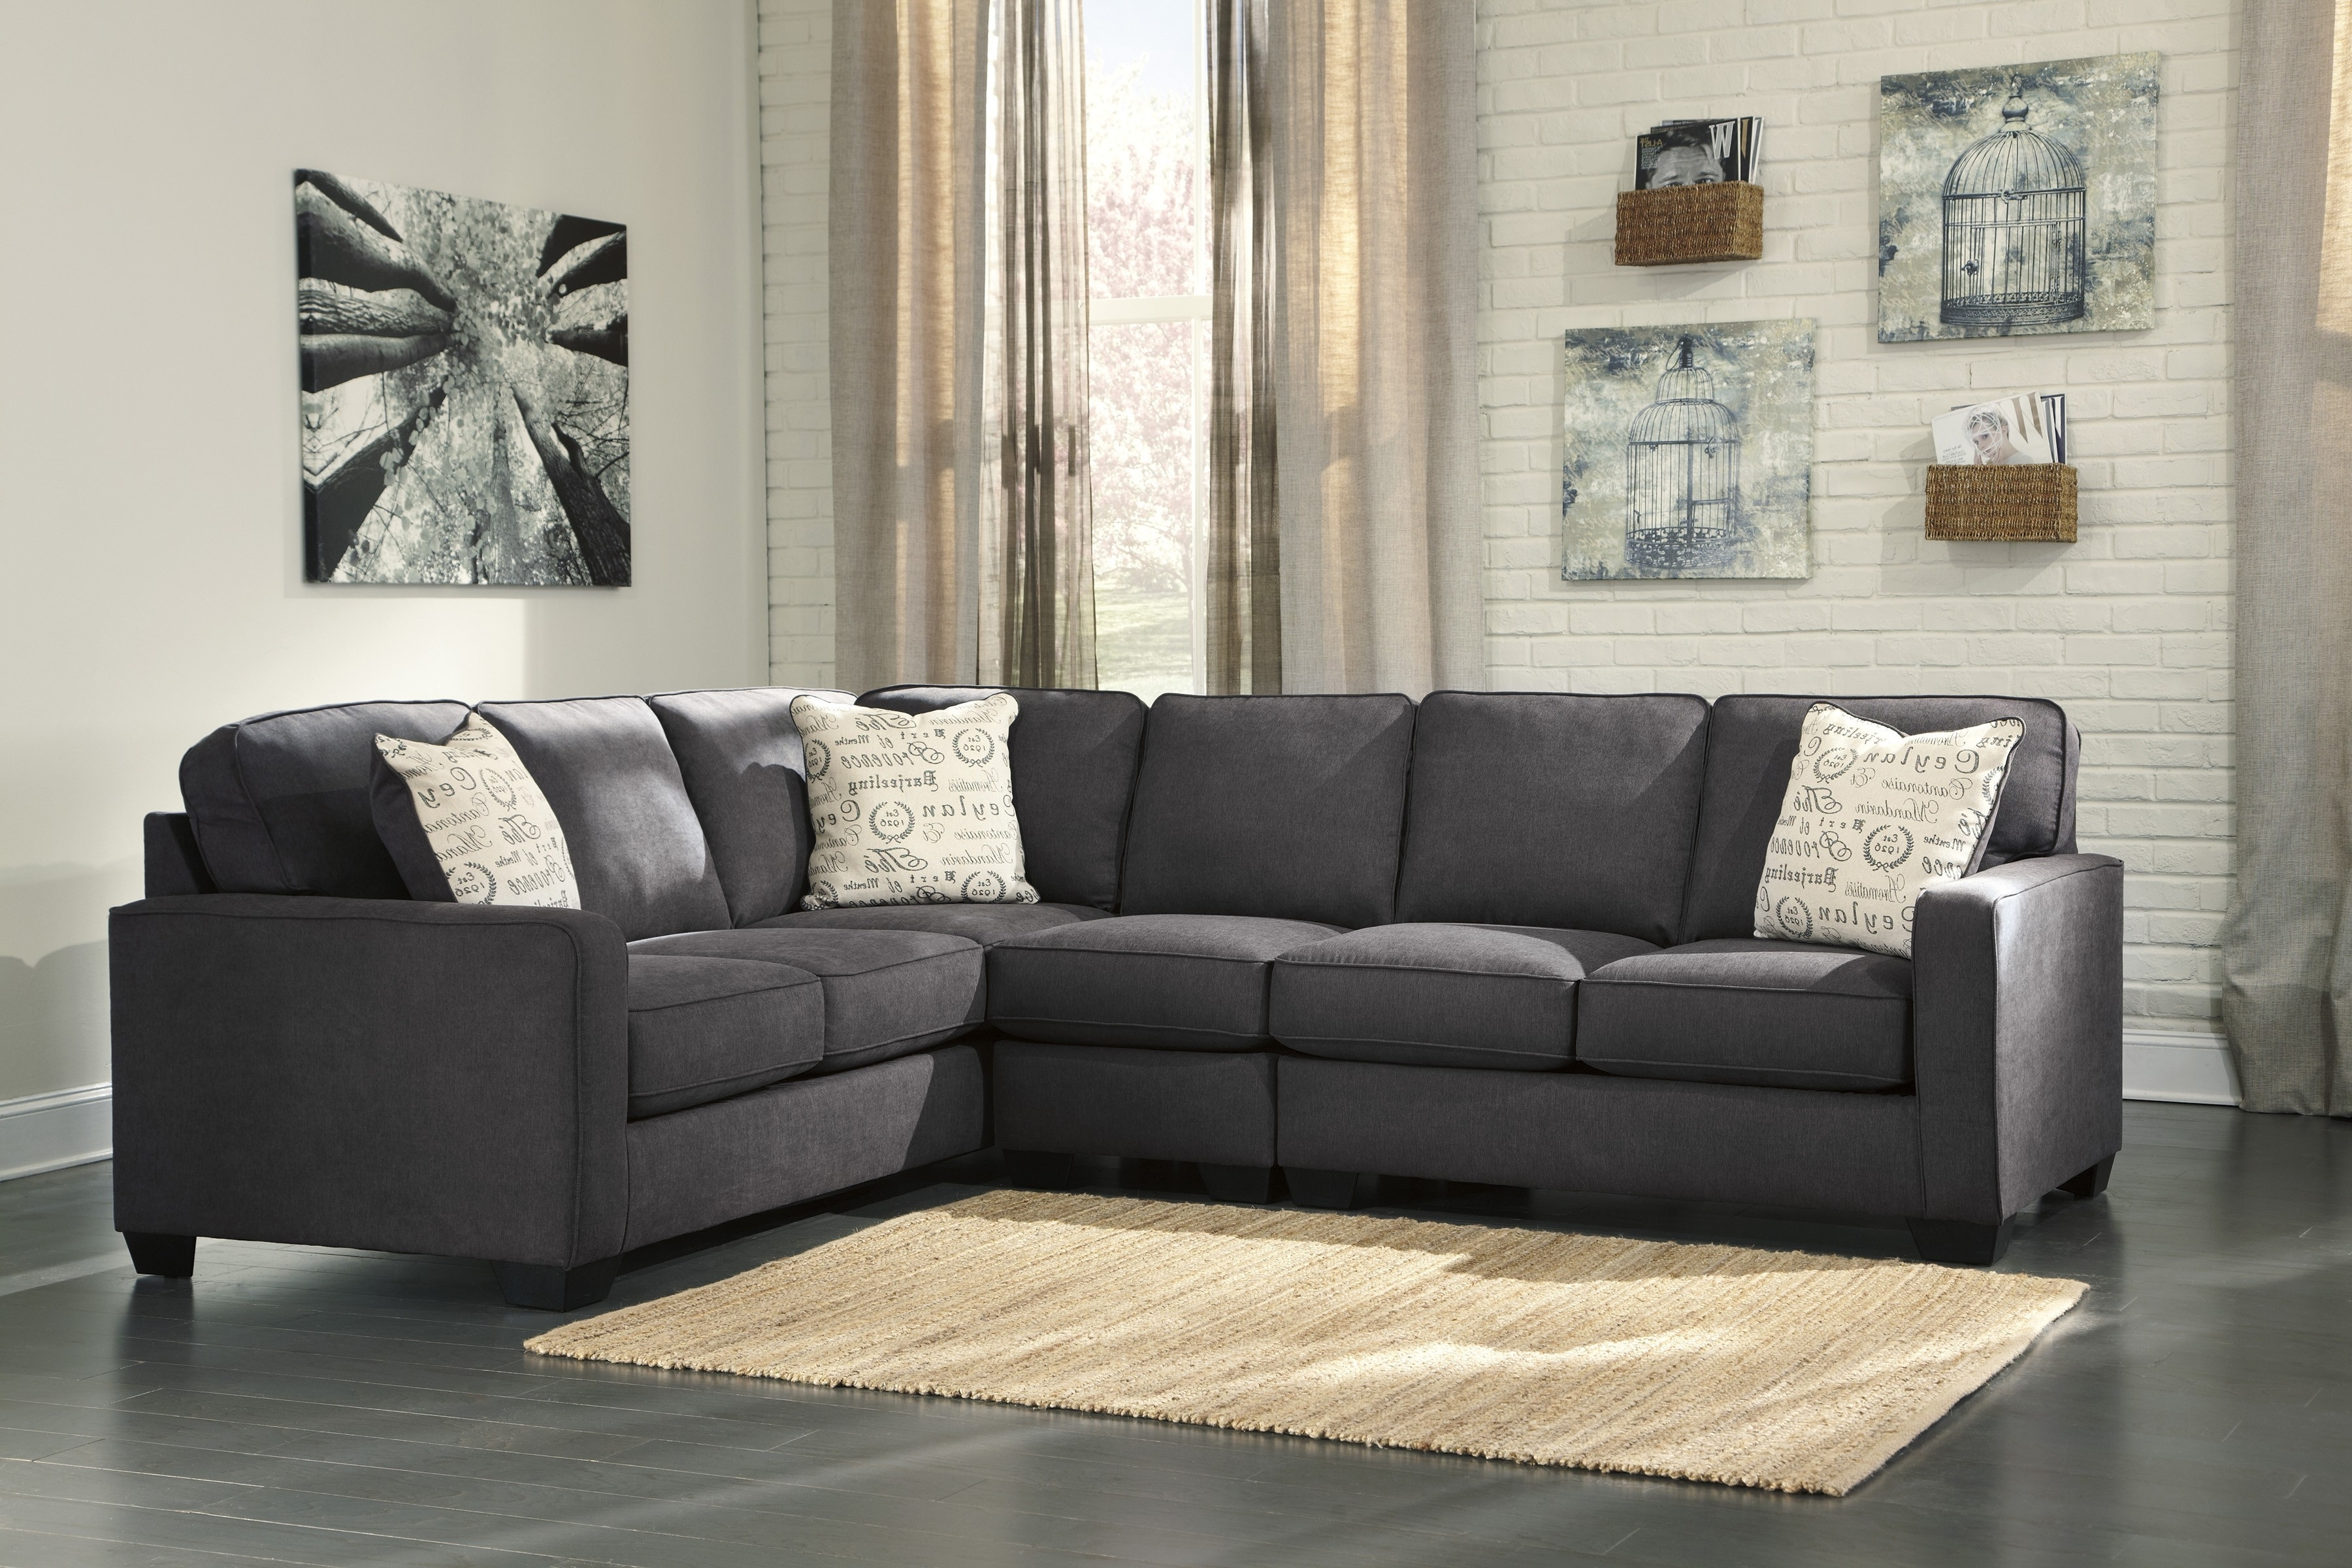 Alenya Charcoal 3-Piece Sectional Sofa For $770.00 - Furnitureusa throughout Kristen Silver Grey 6 Piece Power Reclining Sectionals (Image 2 of 30)